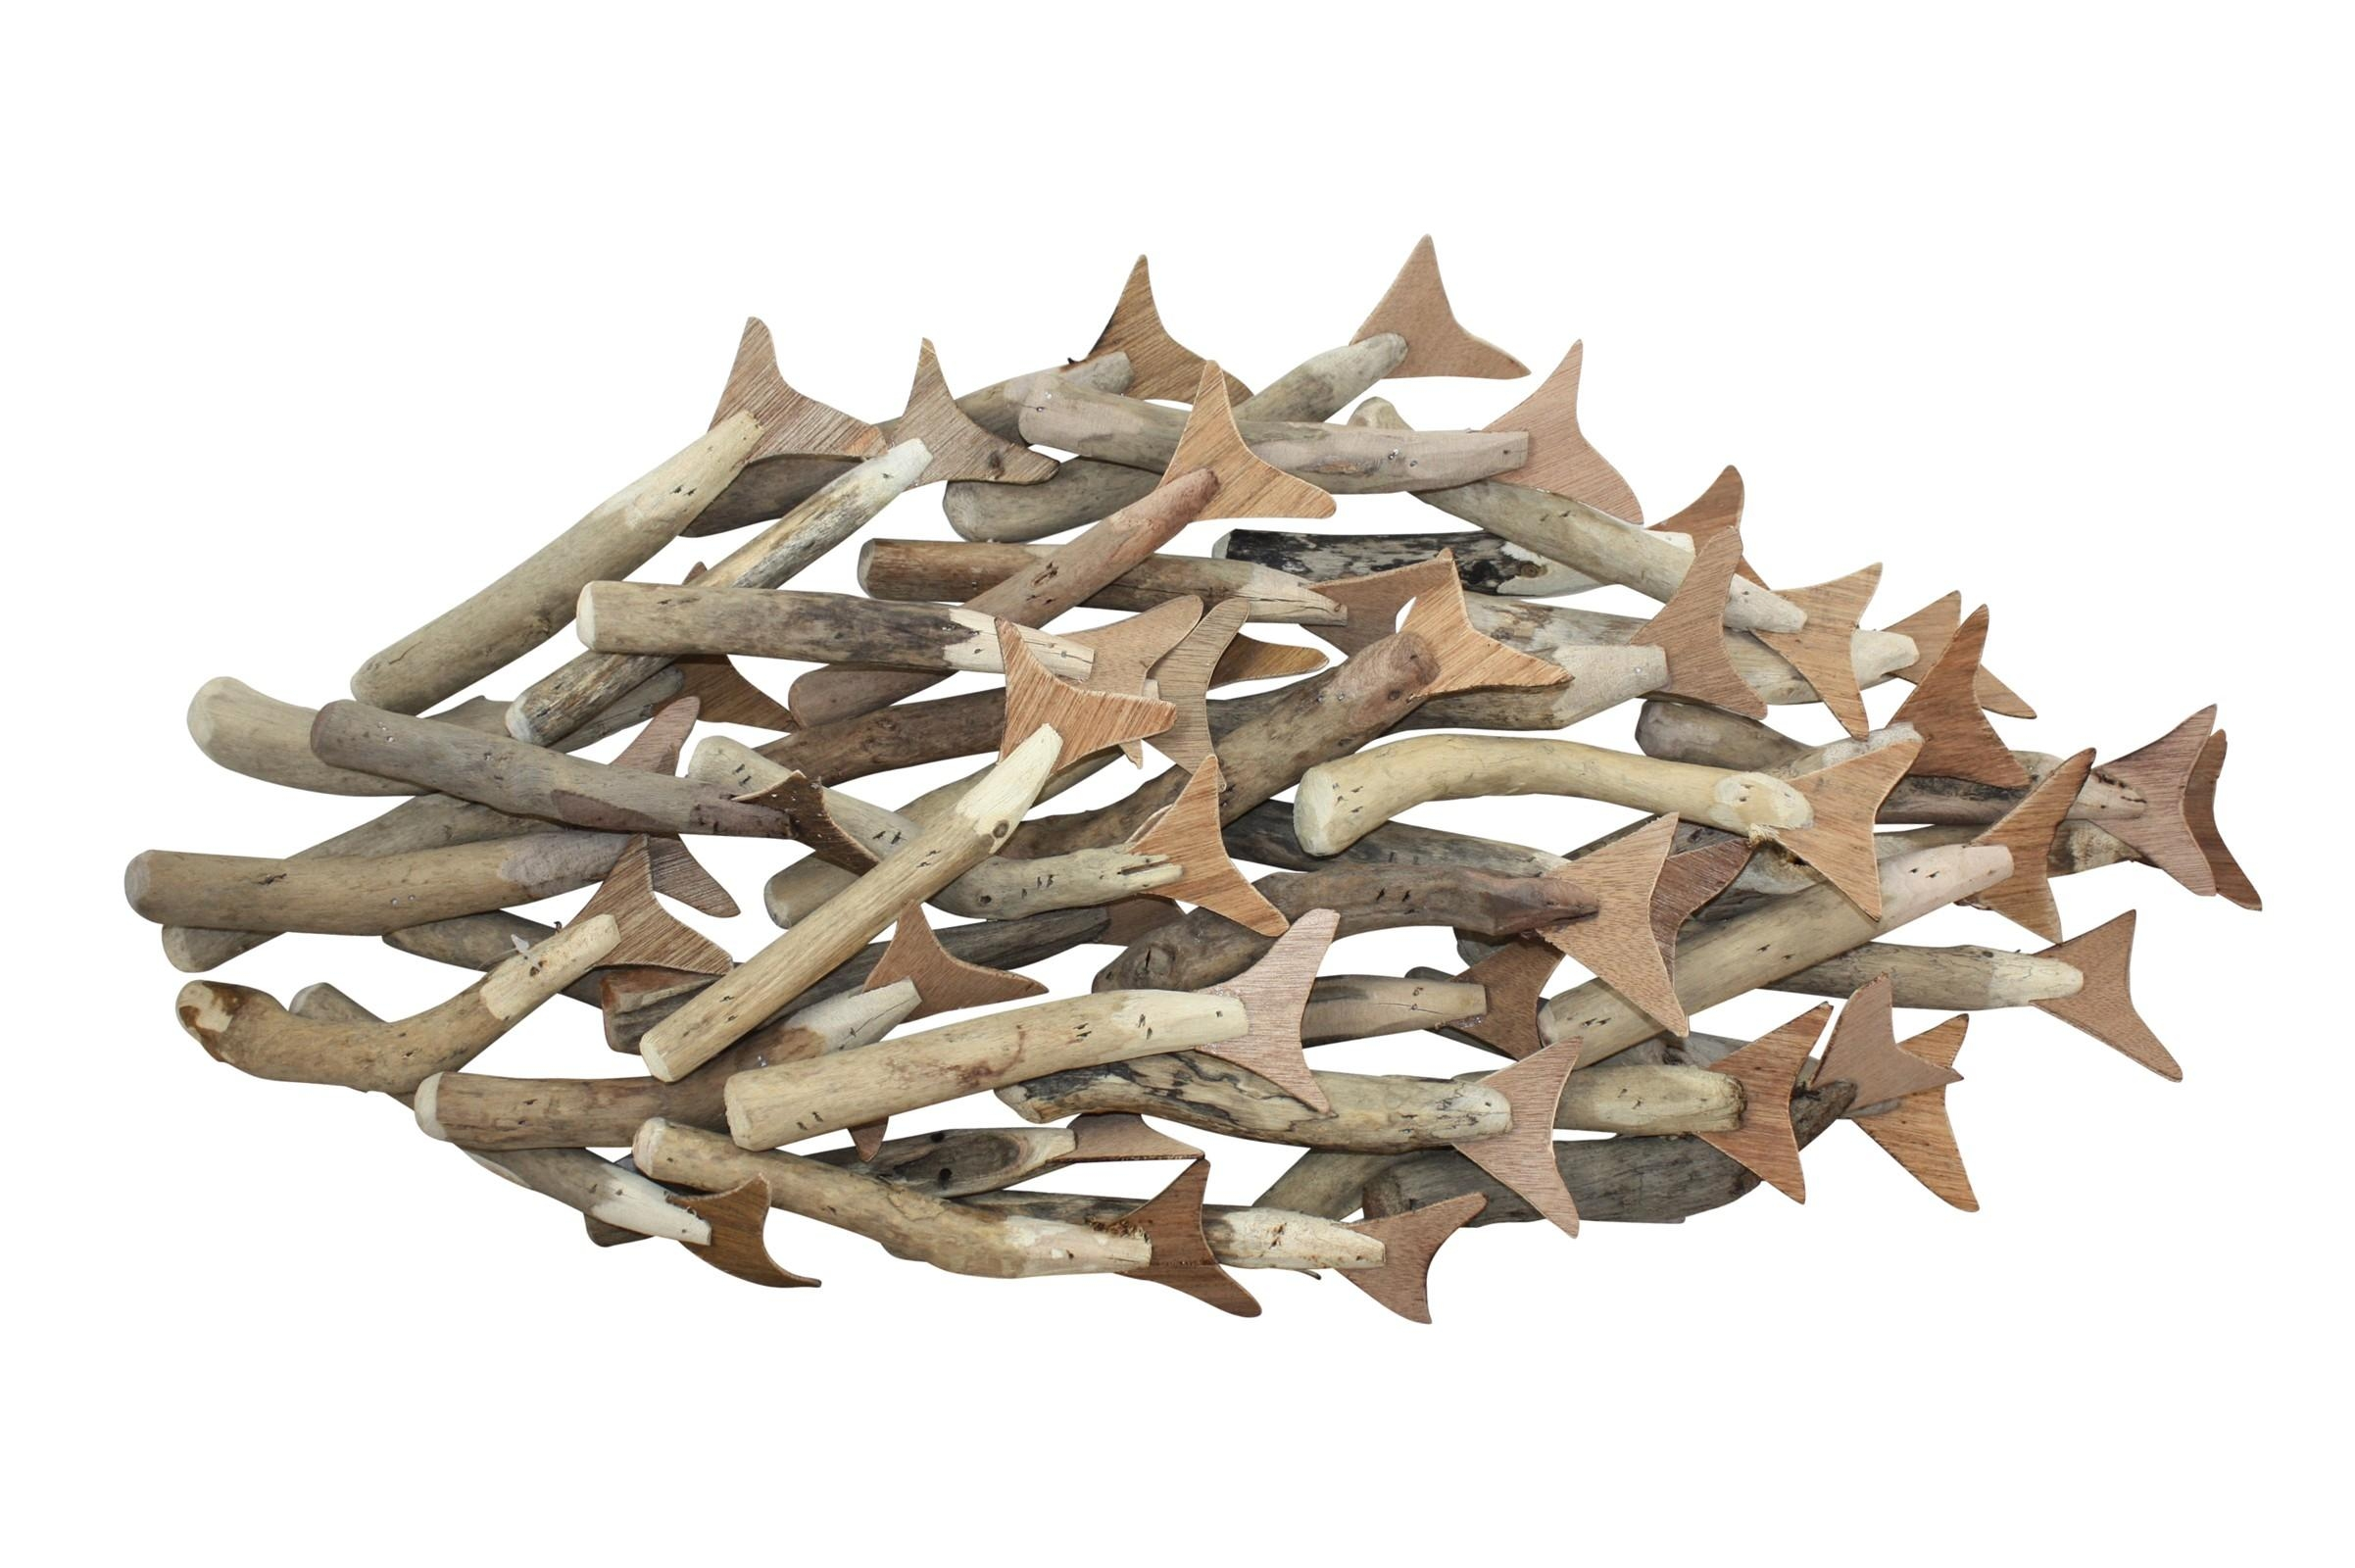 20 collection of stainless steel fish wall art wall art for Fish metal wall art